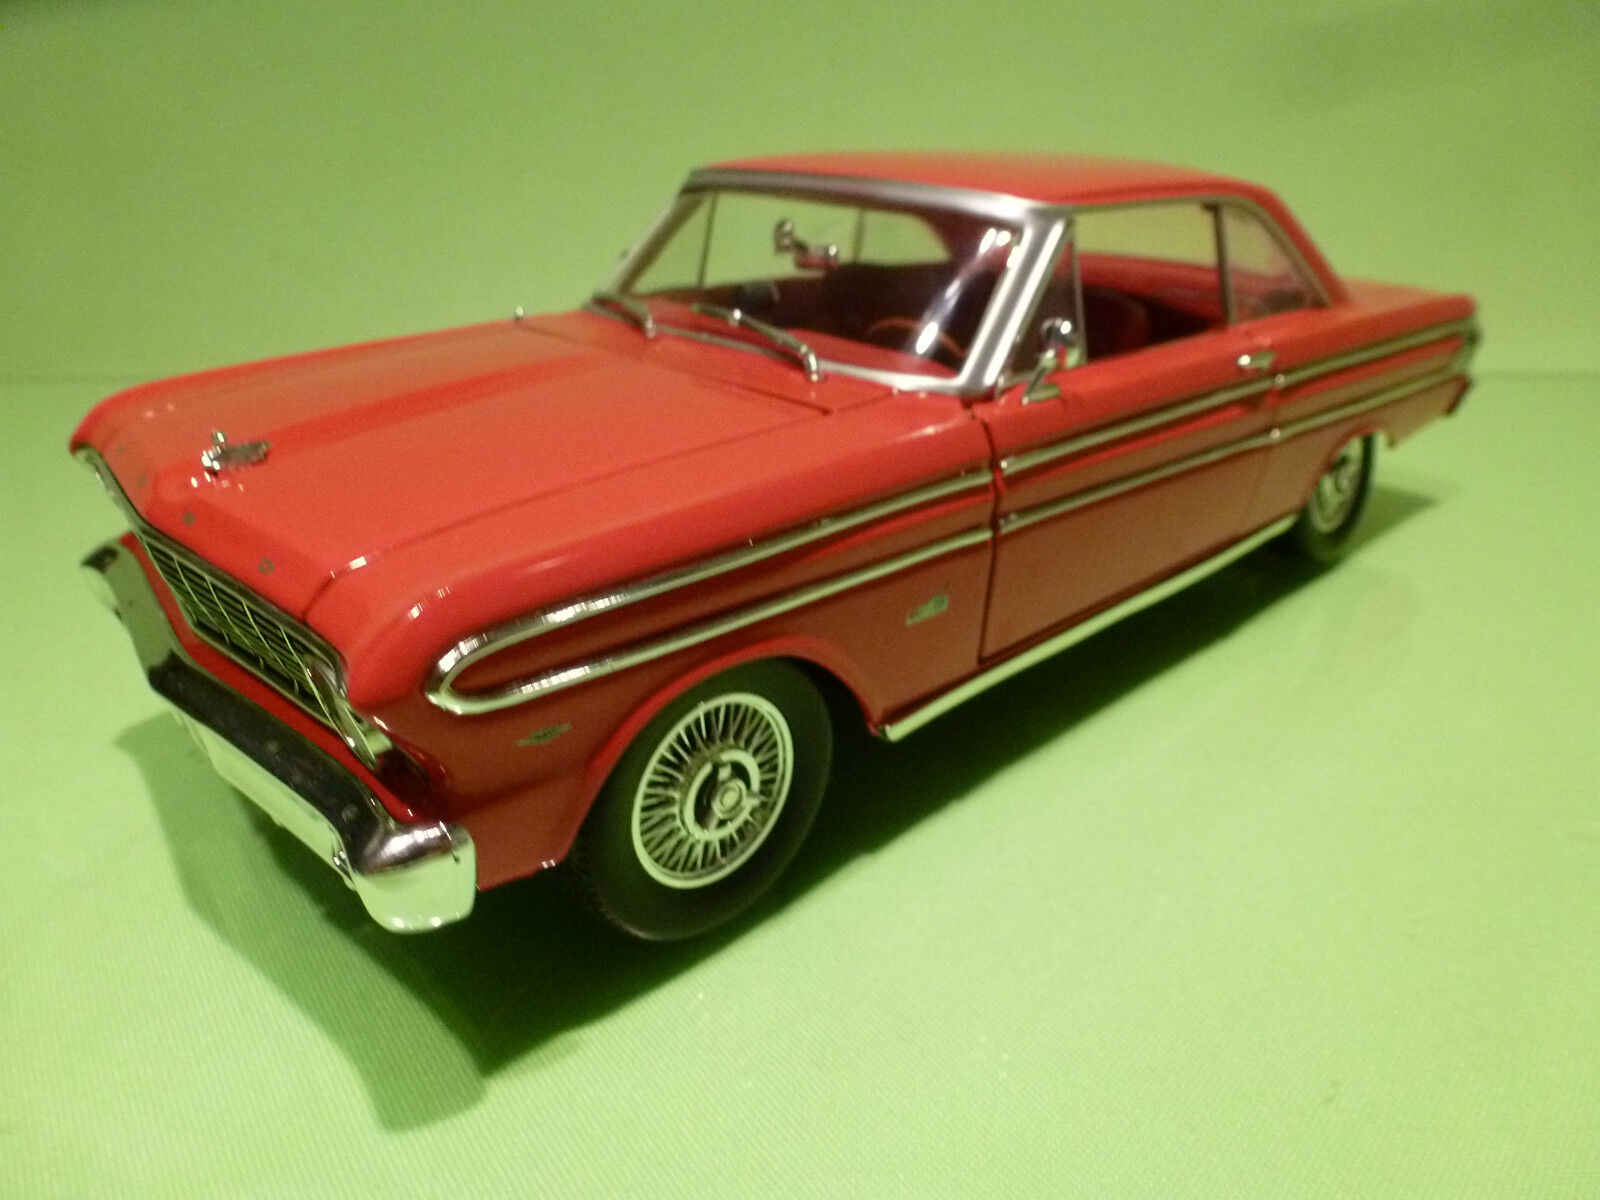 ROAD SIGNATURE FORD FALCON 1964  - RED 1 18 - VERY GOOD CONDITION